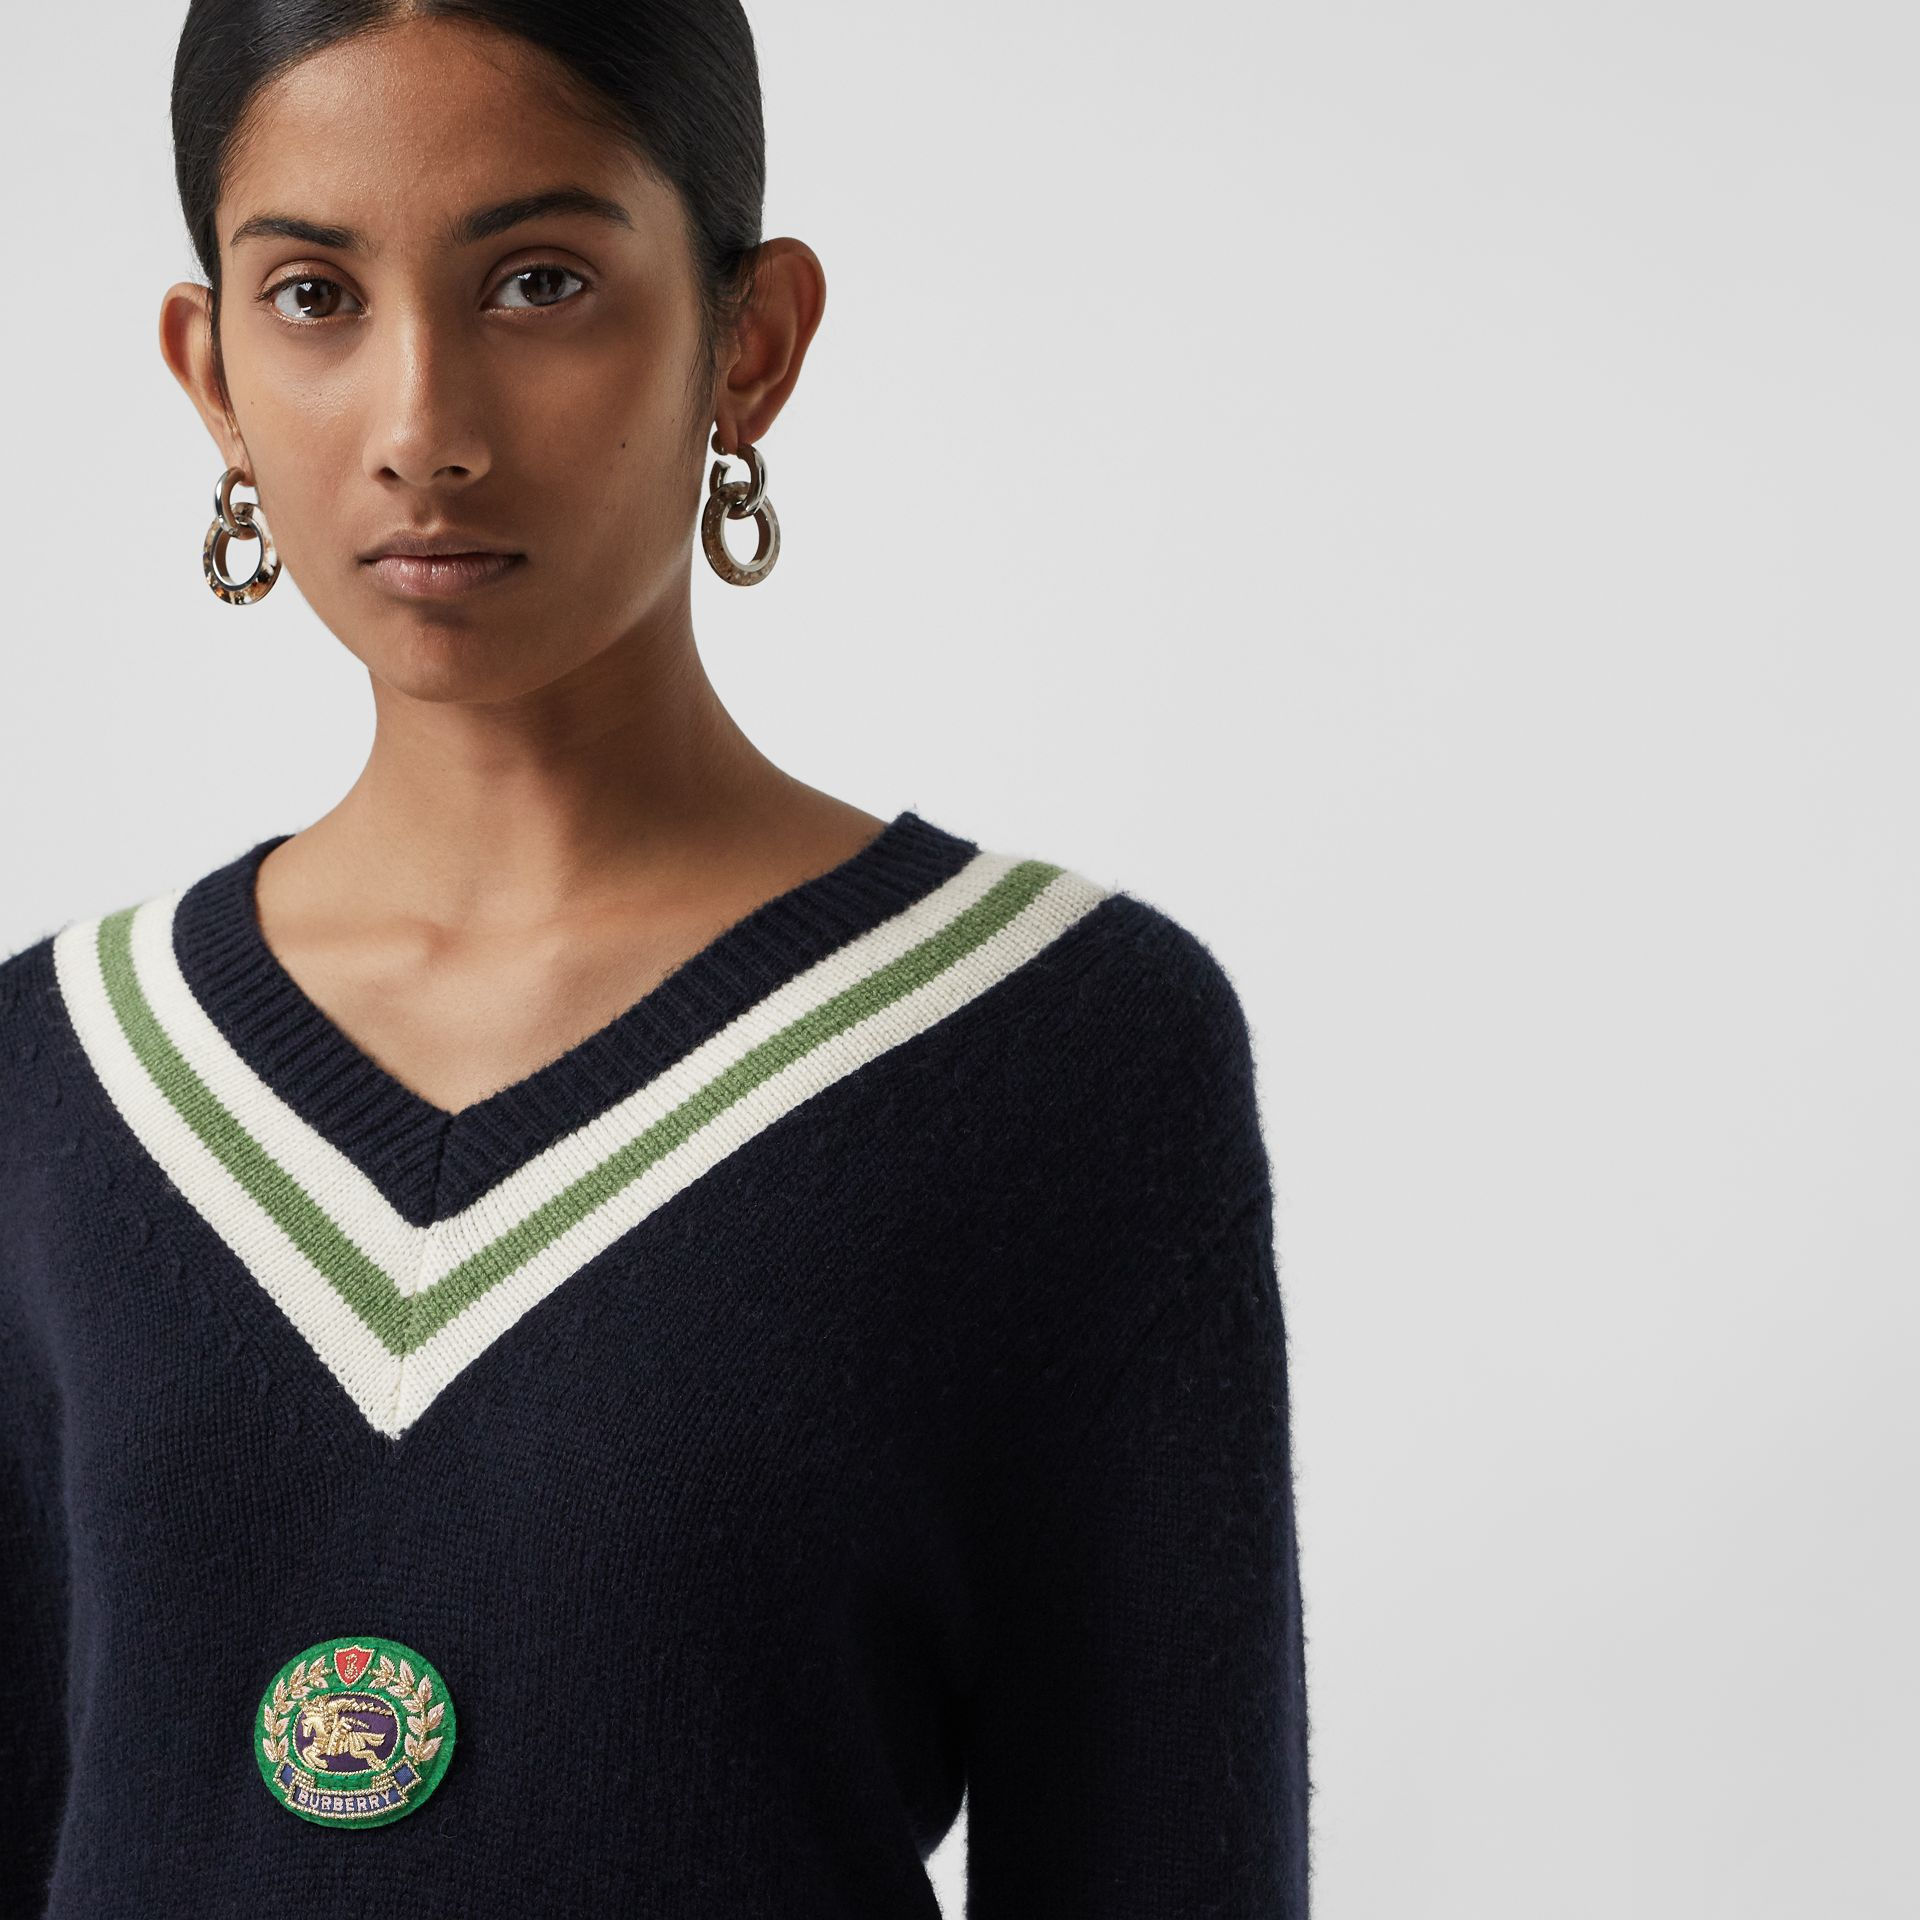 Embroidered Crest Wool Cashmere Sweater in Navy - Women | Burberry - gallery image 1